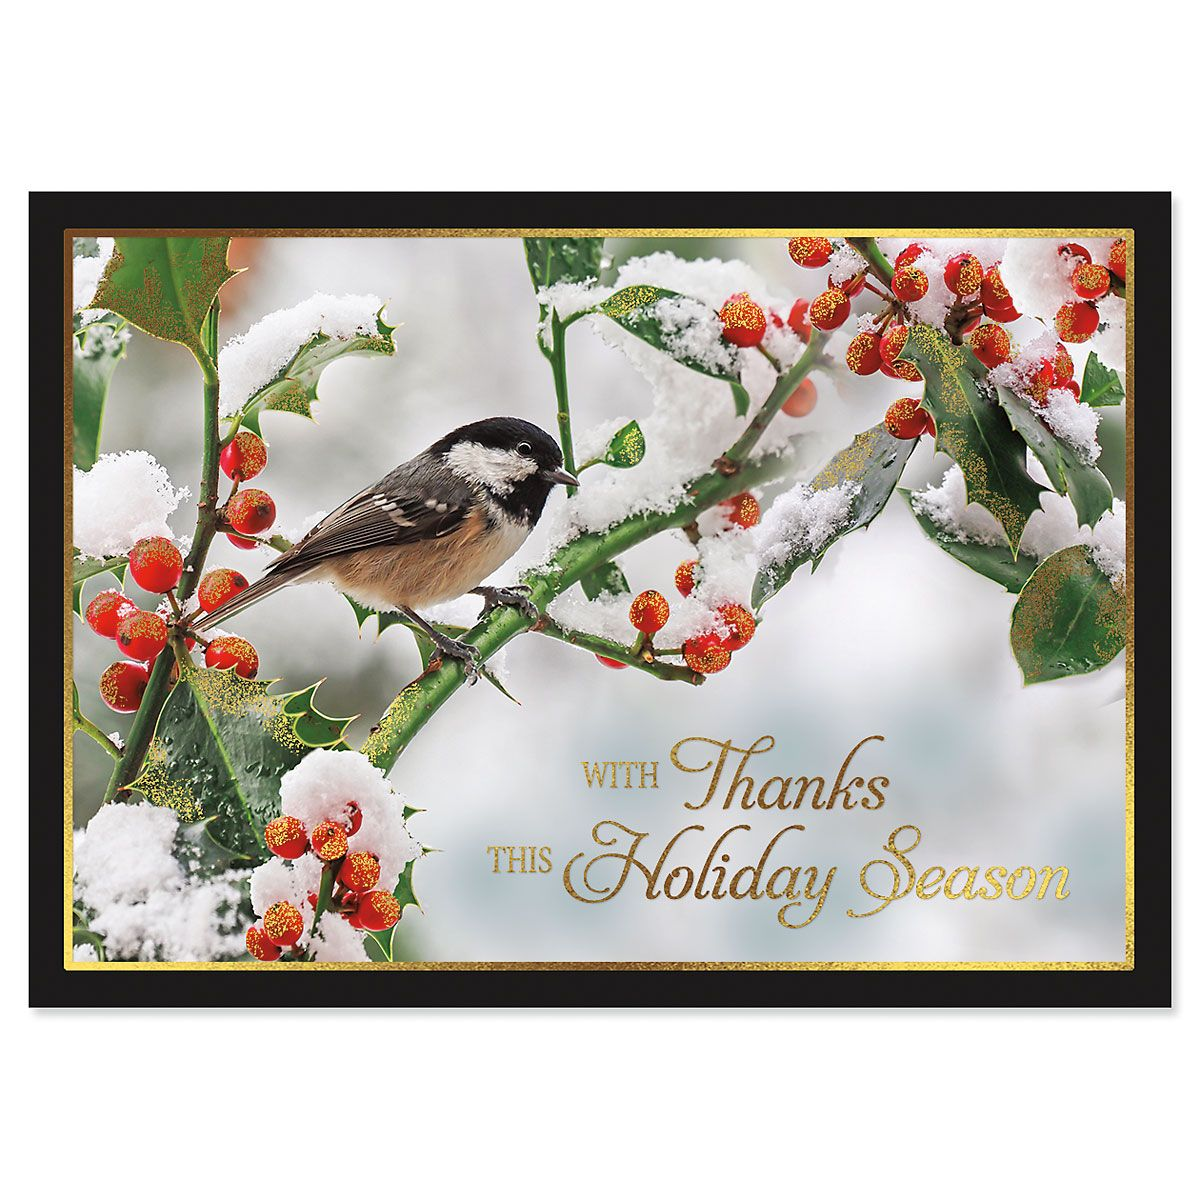 Berries in Snow Deluxe Foil Christmas Cards